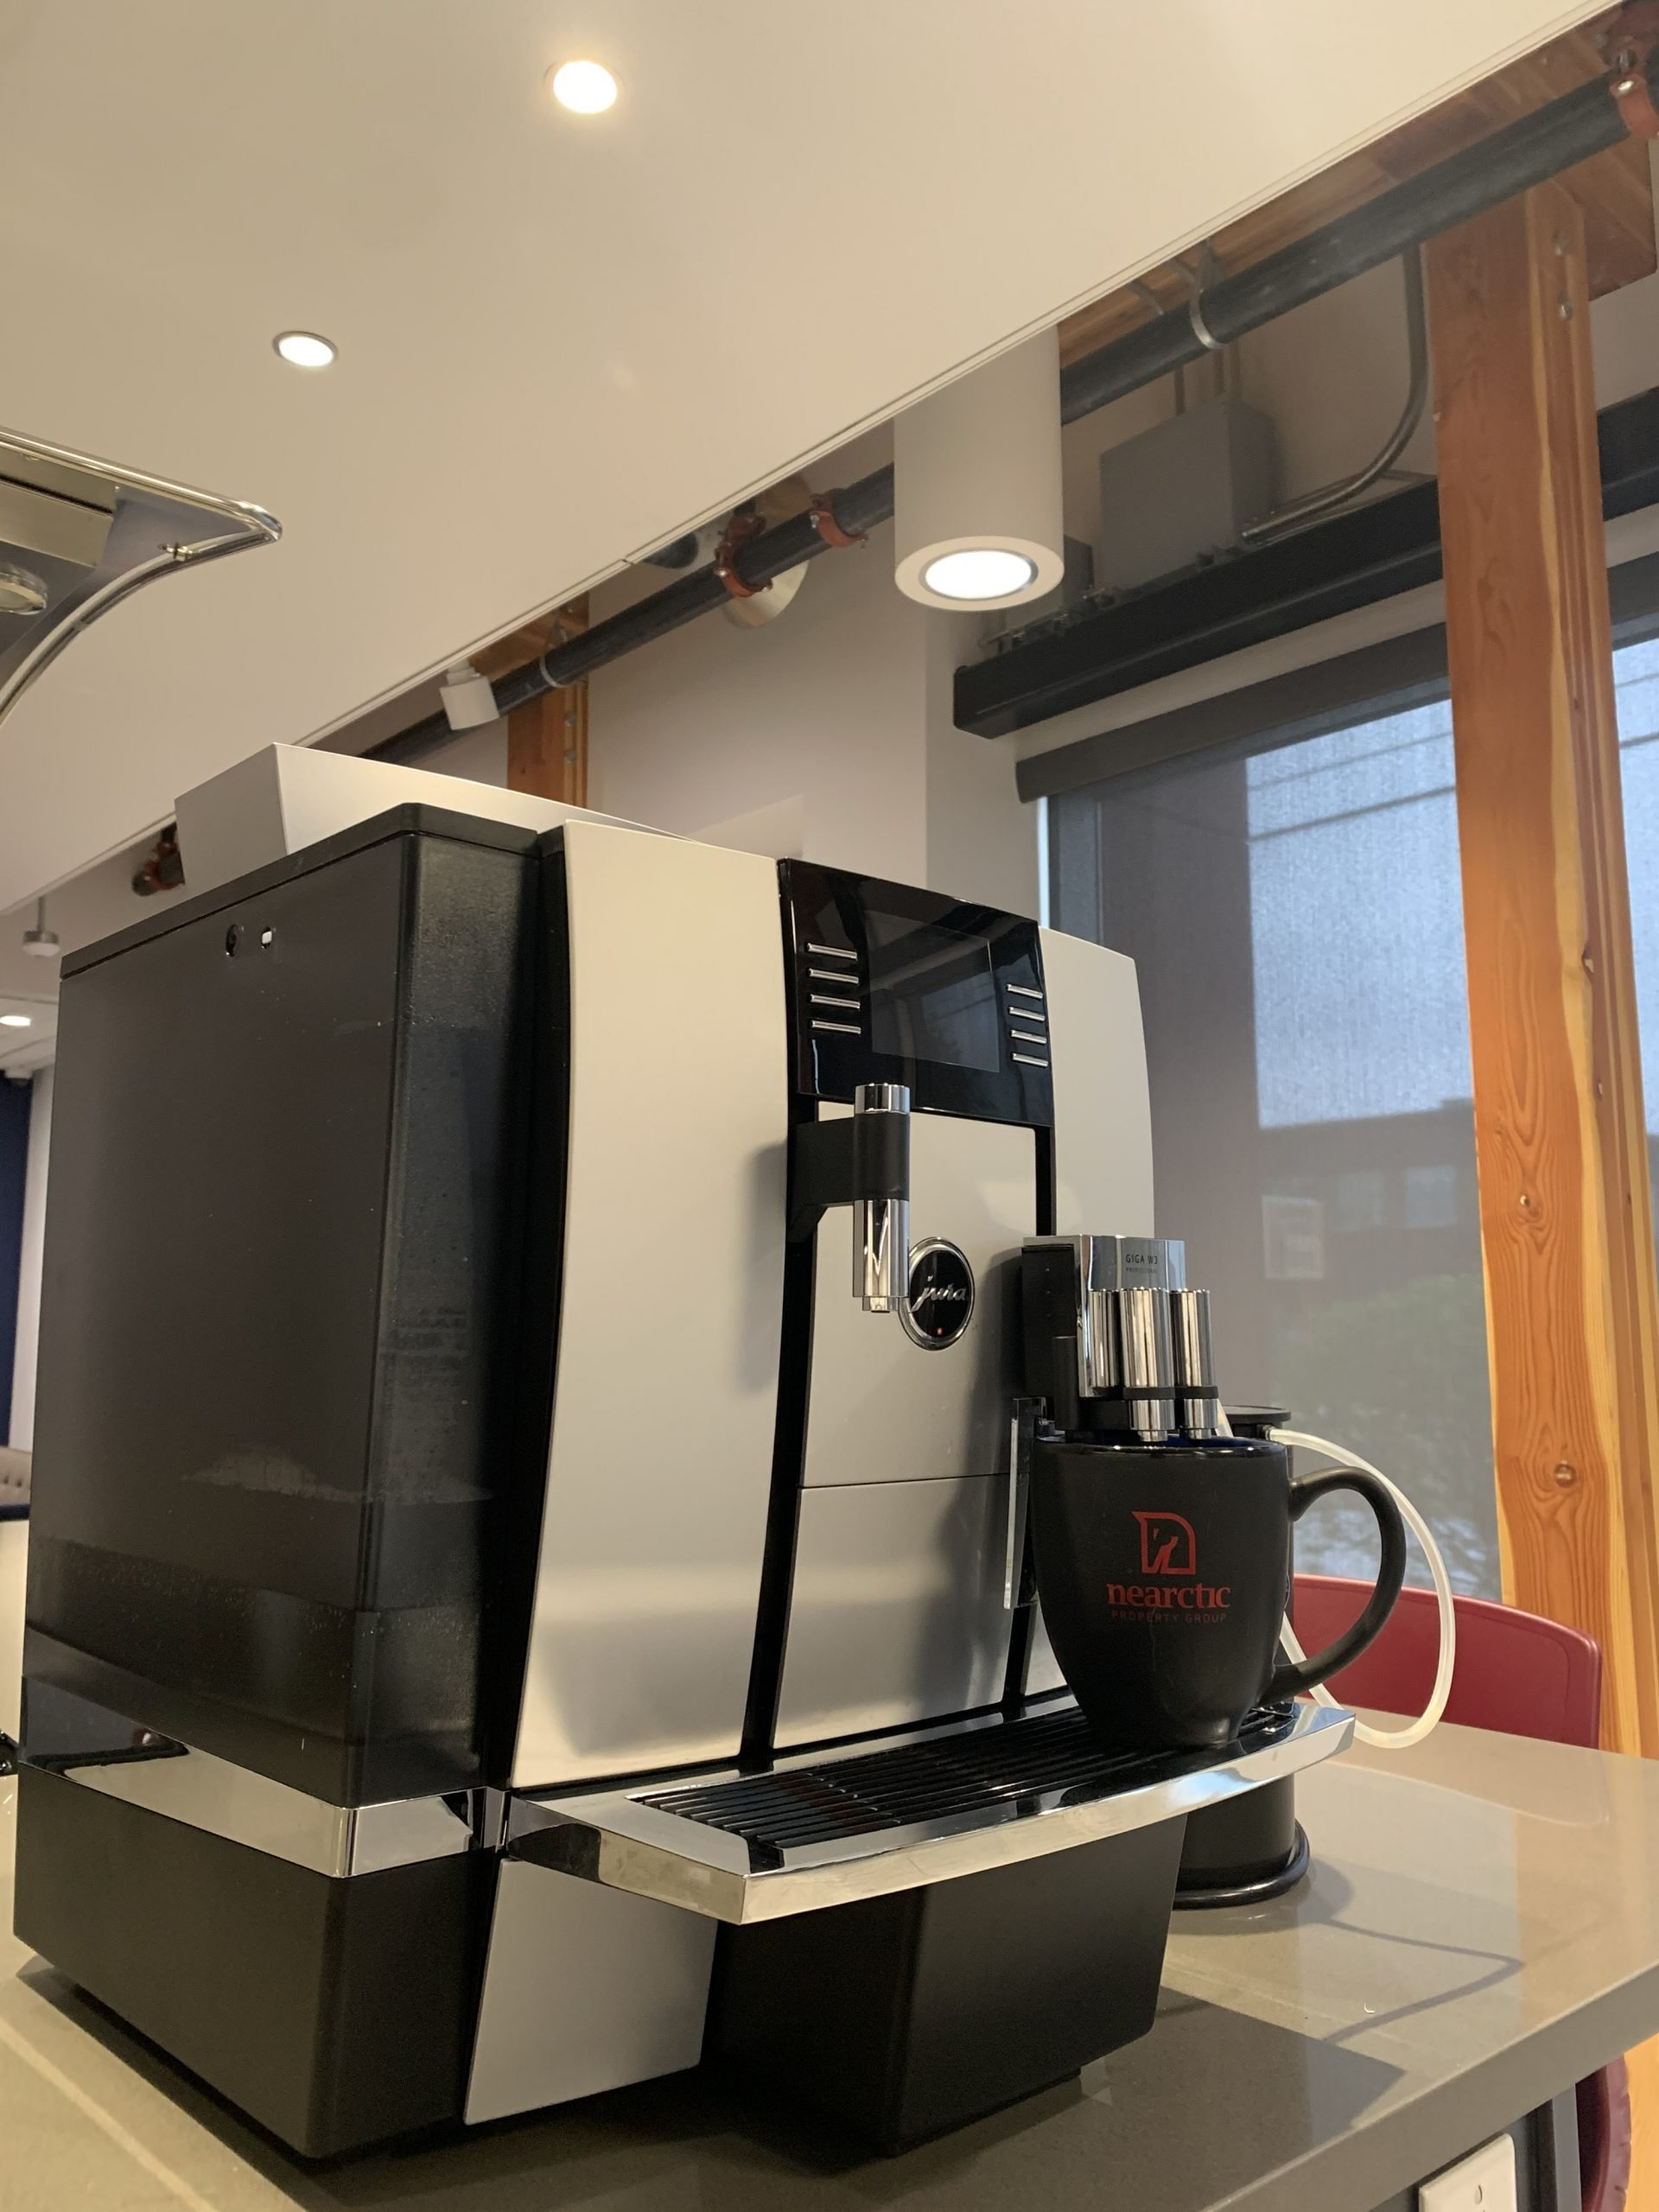 New Coffee Machine & Year Ends